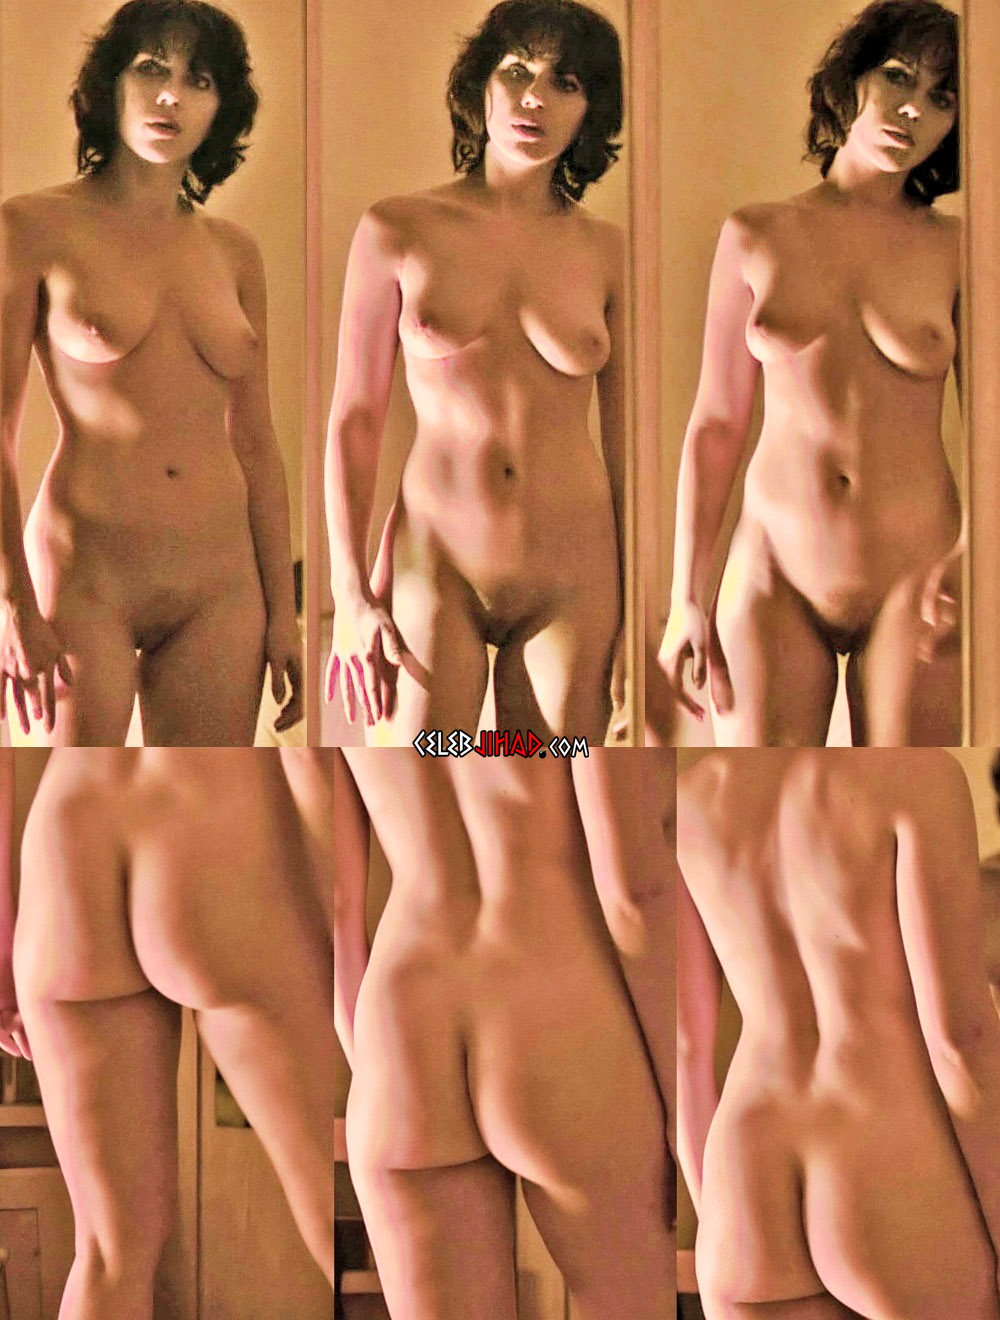 Gorgeous bitch scarlett johansson fucking nude posing boobs